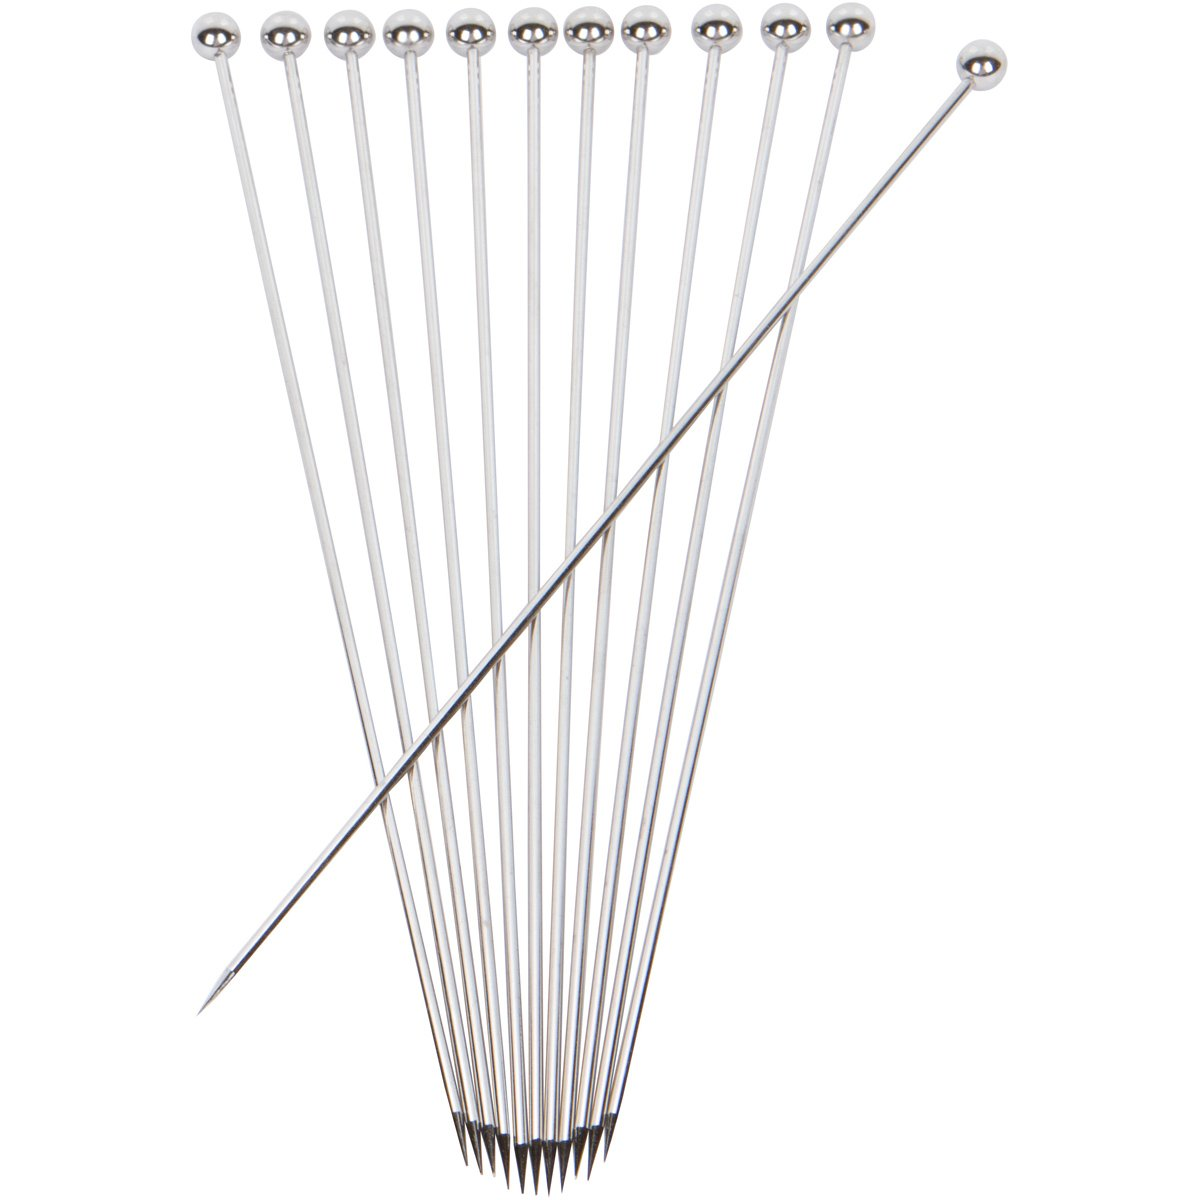 Stainless Steel Cocktail Picks - Extra long 8'' (Set of 12)